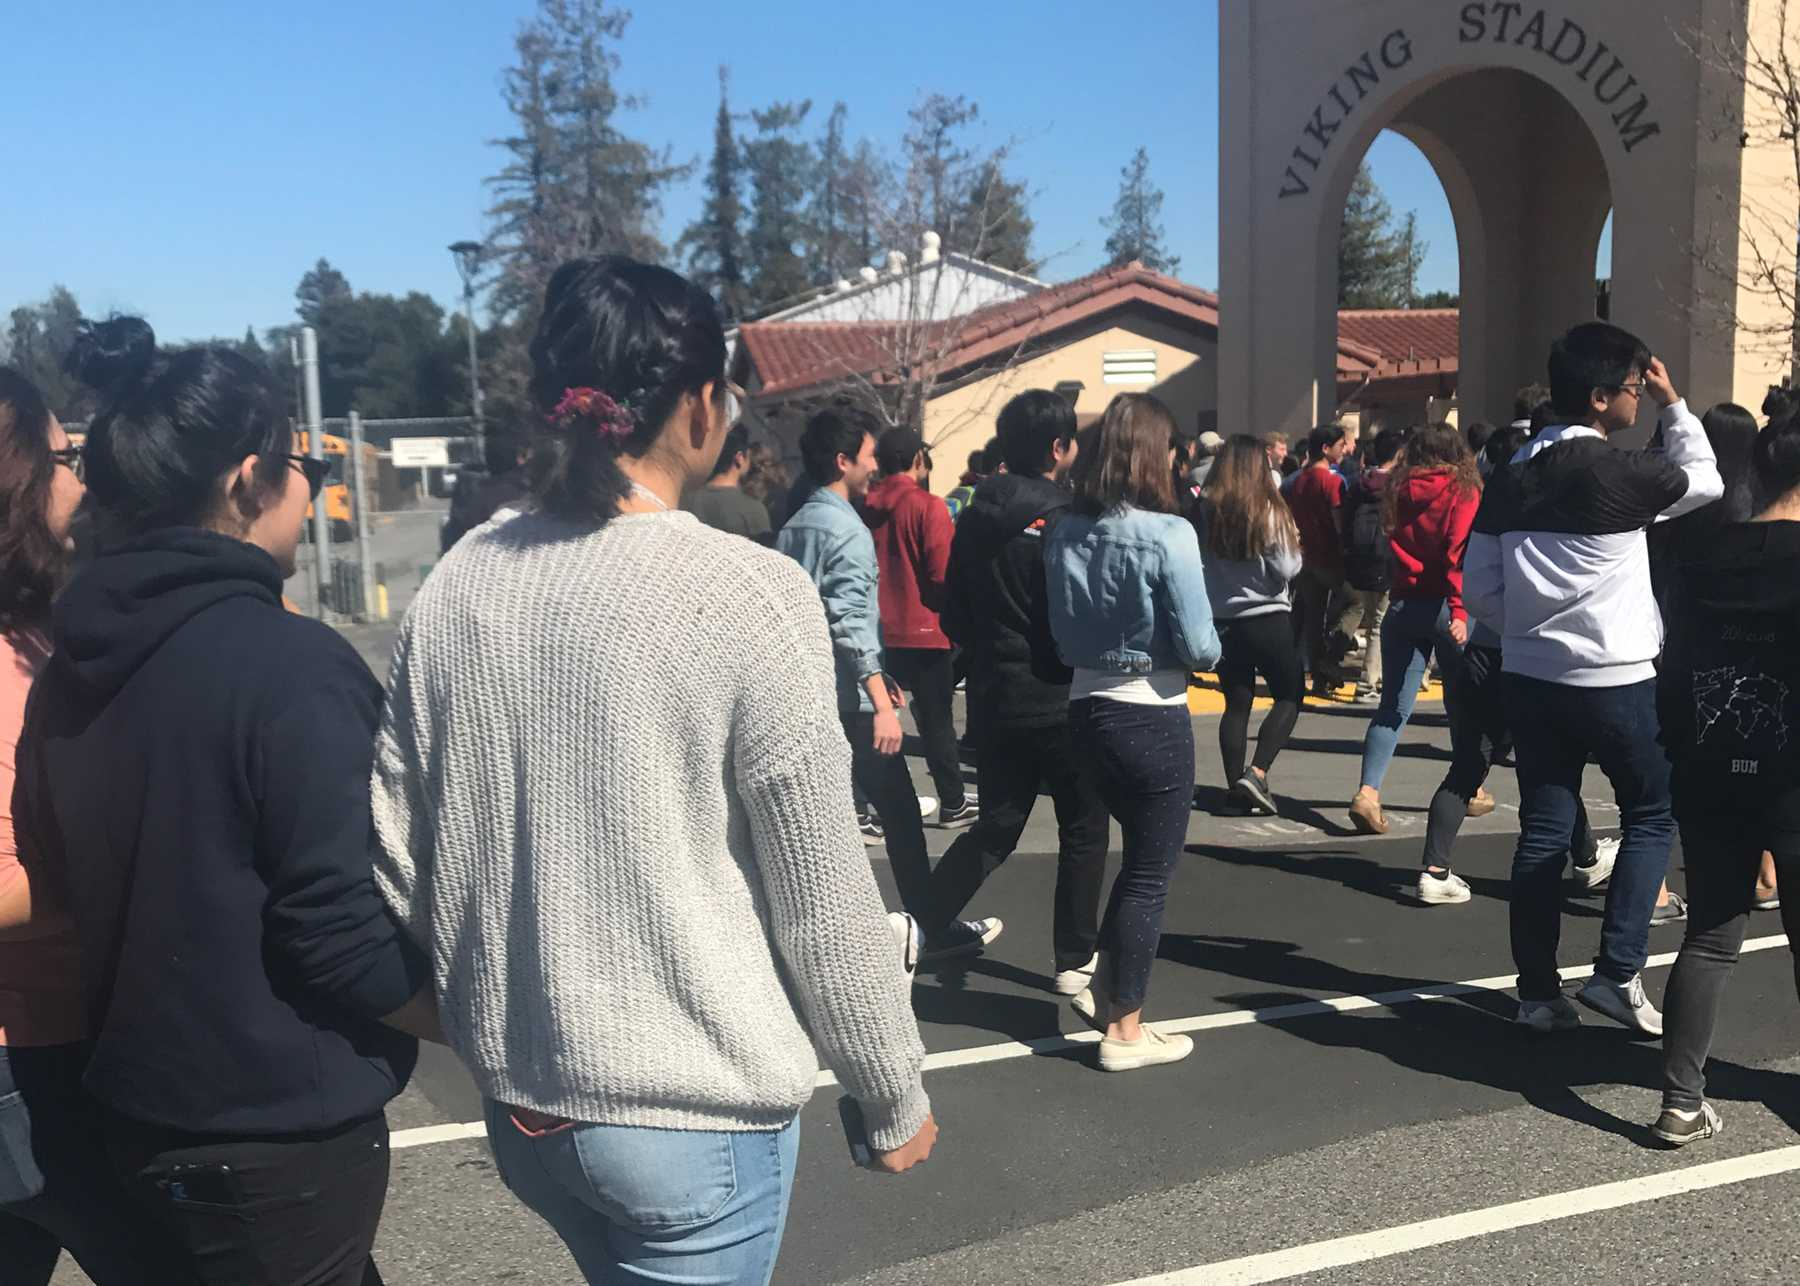 Palo Alto High School students walk towards the football field after a fire alarm disrupted class during 5th period on Wednesday afternoon. Palo Alto High School junior Andrew Shih, in addition to many other students, will have his testing schedule impacted by the drill in the upcoming week.